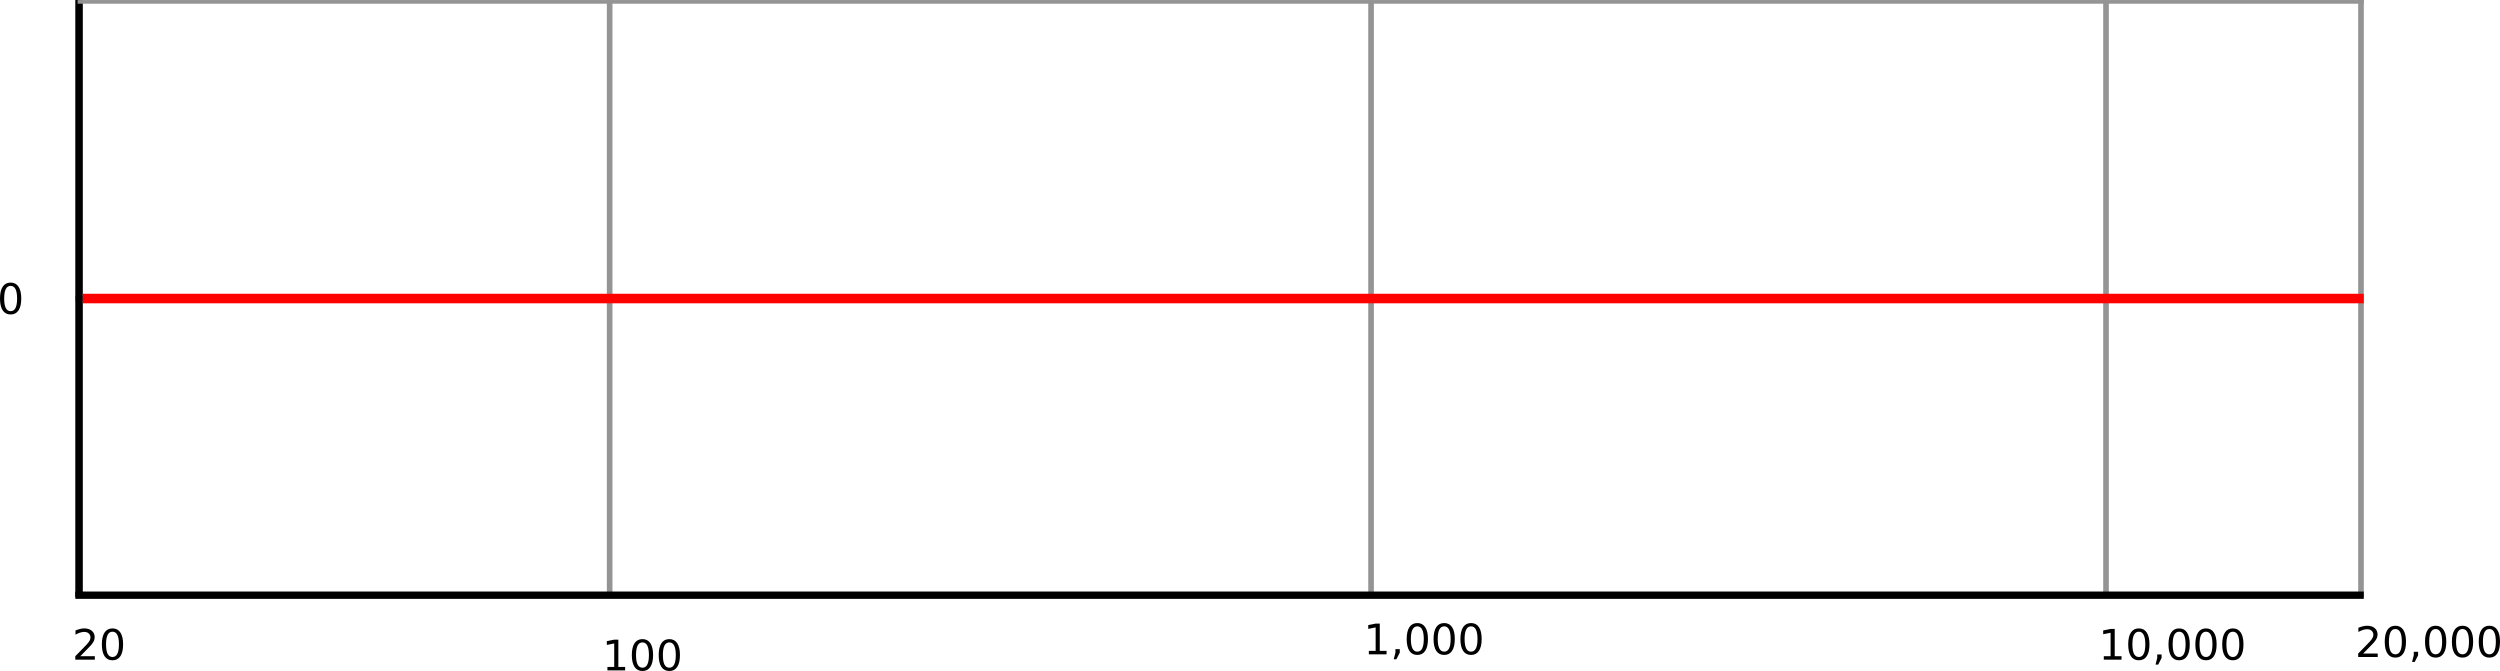 How a microphone responds to sound is described by a frequency response graph. Frequency is given on the X axis in a logarithmic scale, and the Y axis displays how the microphone responds to that frequency. Zero is in the middle of the Y axis. Below this point means that a microphone attenuates (turns down) the frequency, while above means that it boosts it. The image depicts a hypothetical 'perfect' microphone which responds equally at all frequencies, a straight horizontal line on zero